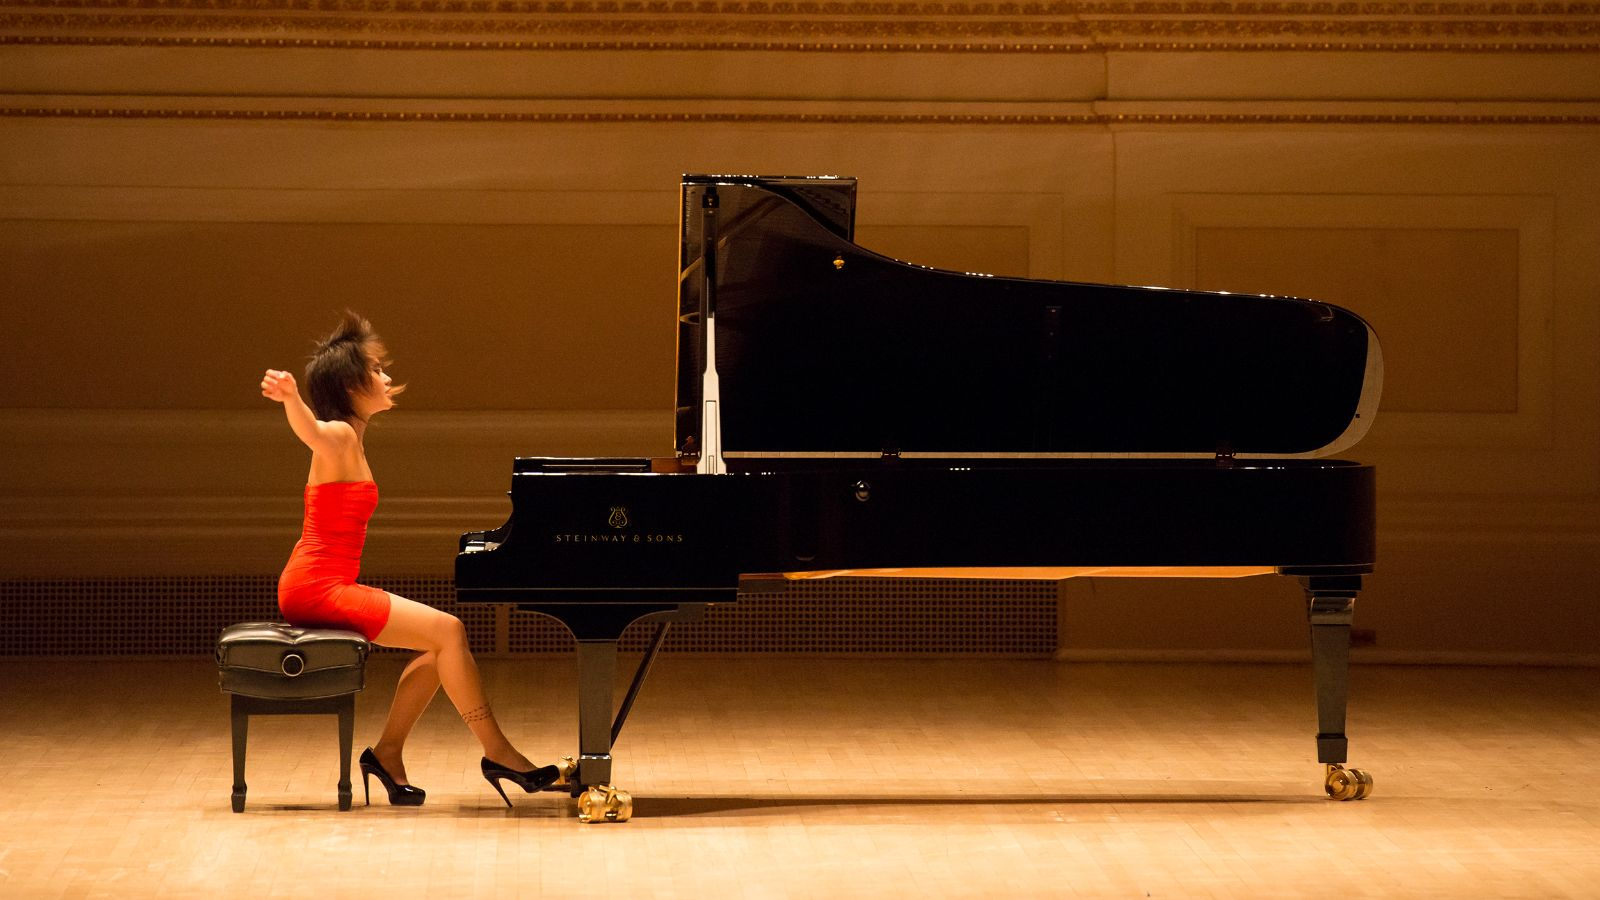 Yuja Wang Steinway And Sons Piano Artist Available in Spirio Library